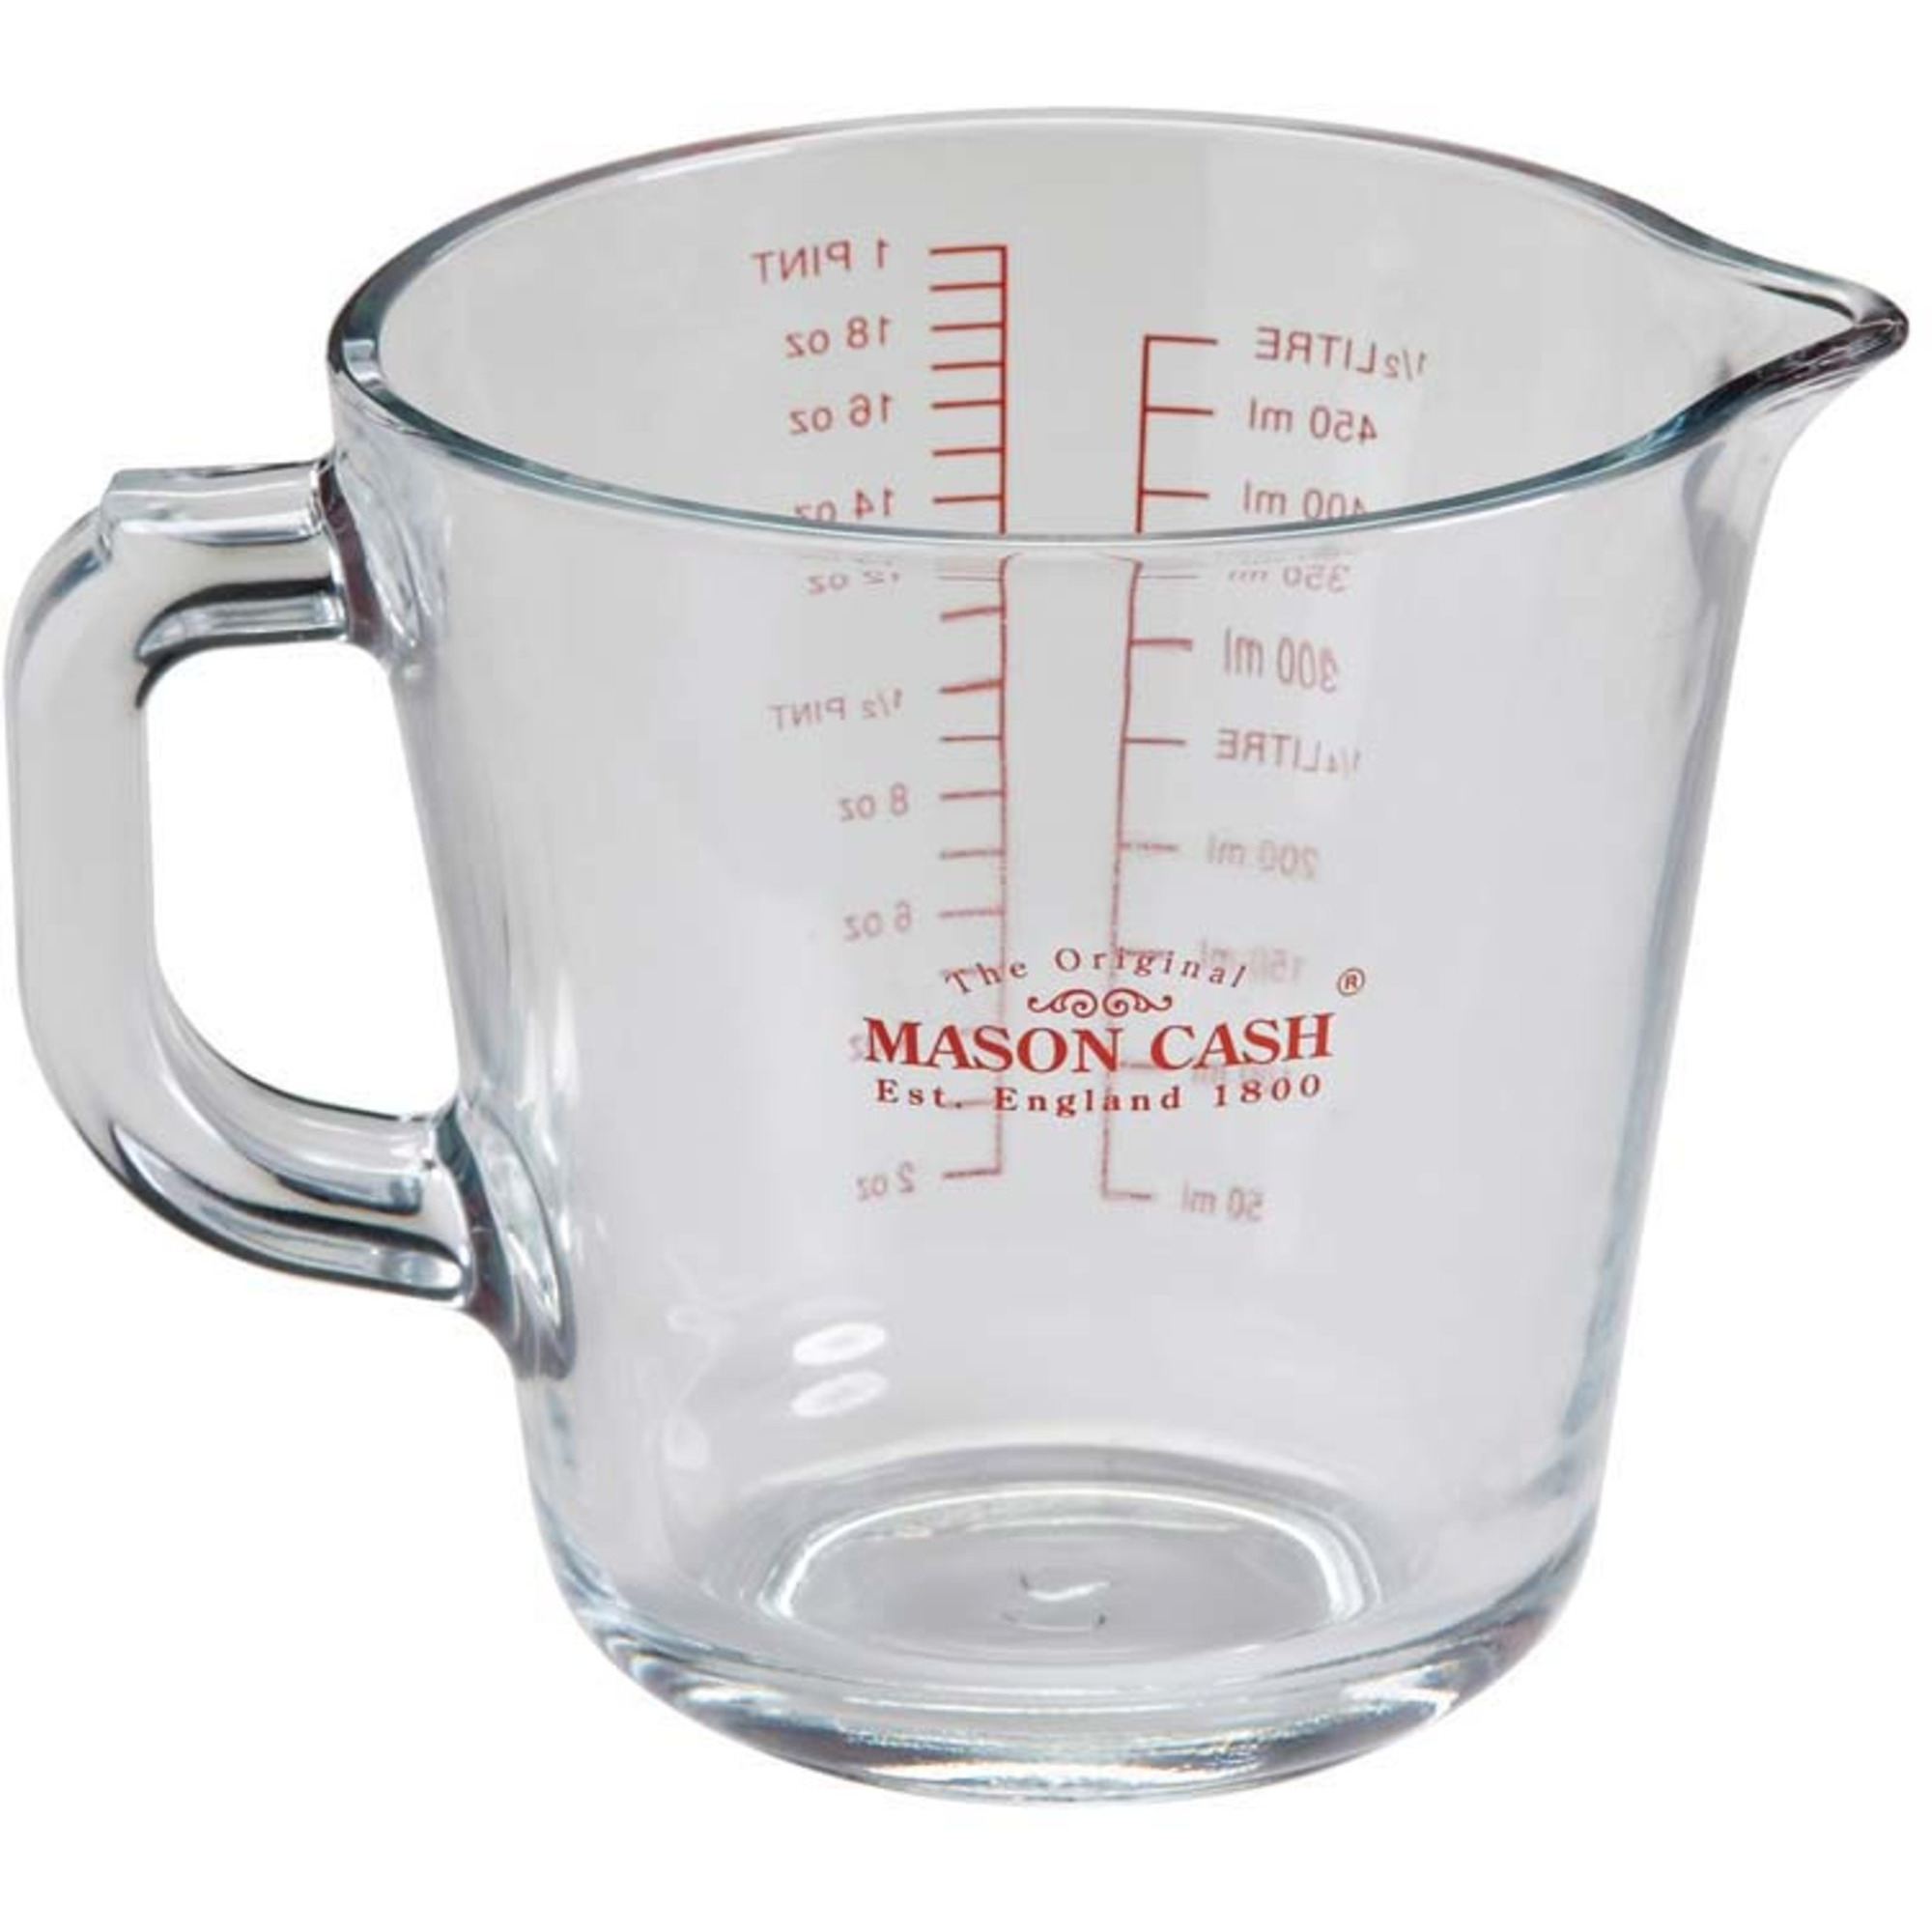 Mason Cash Måttkanna 500 ml